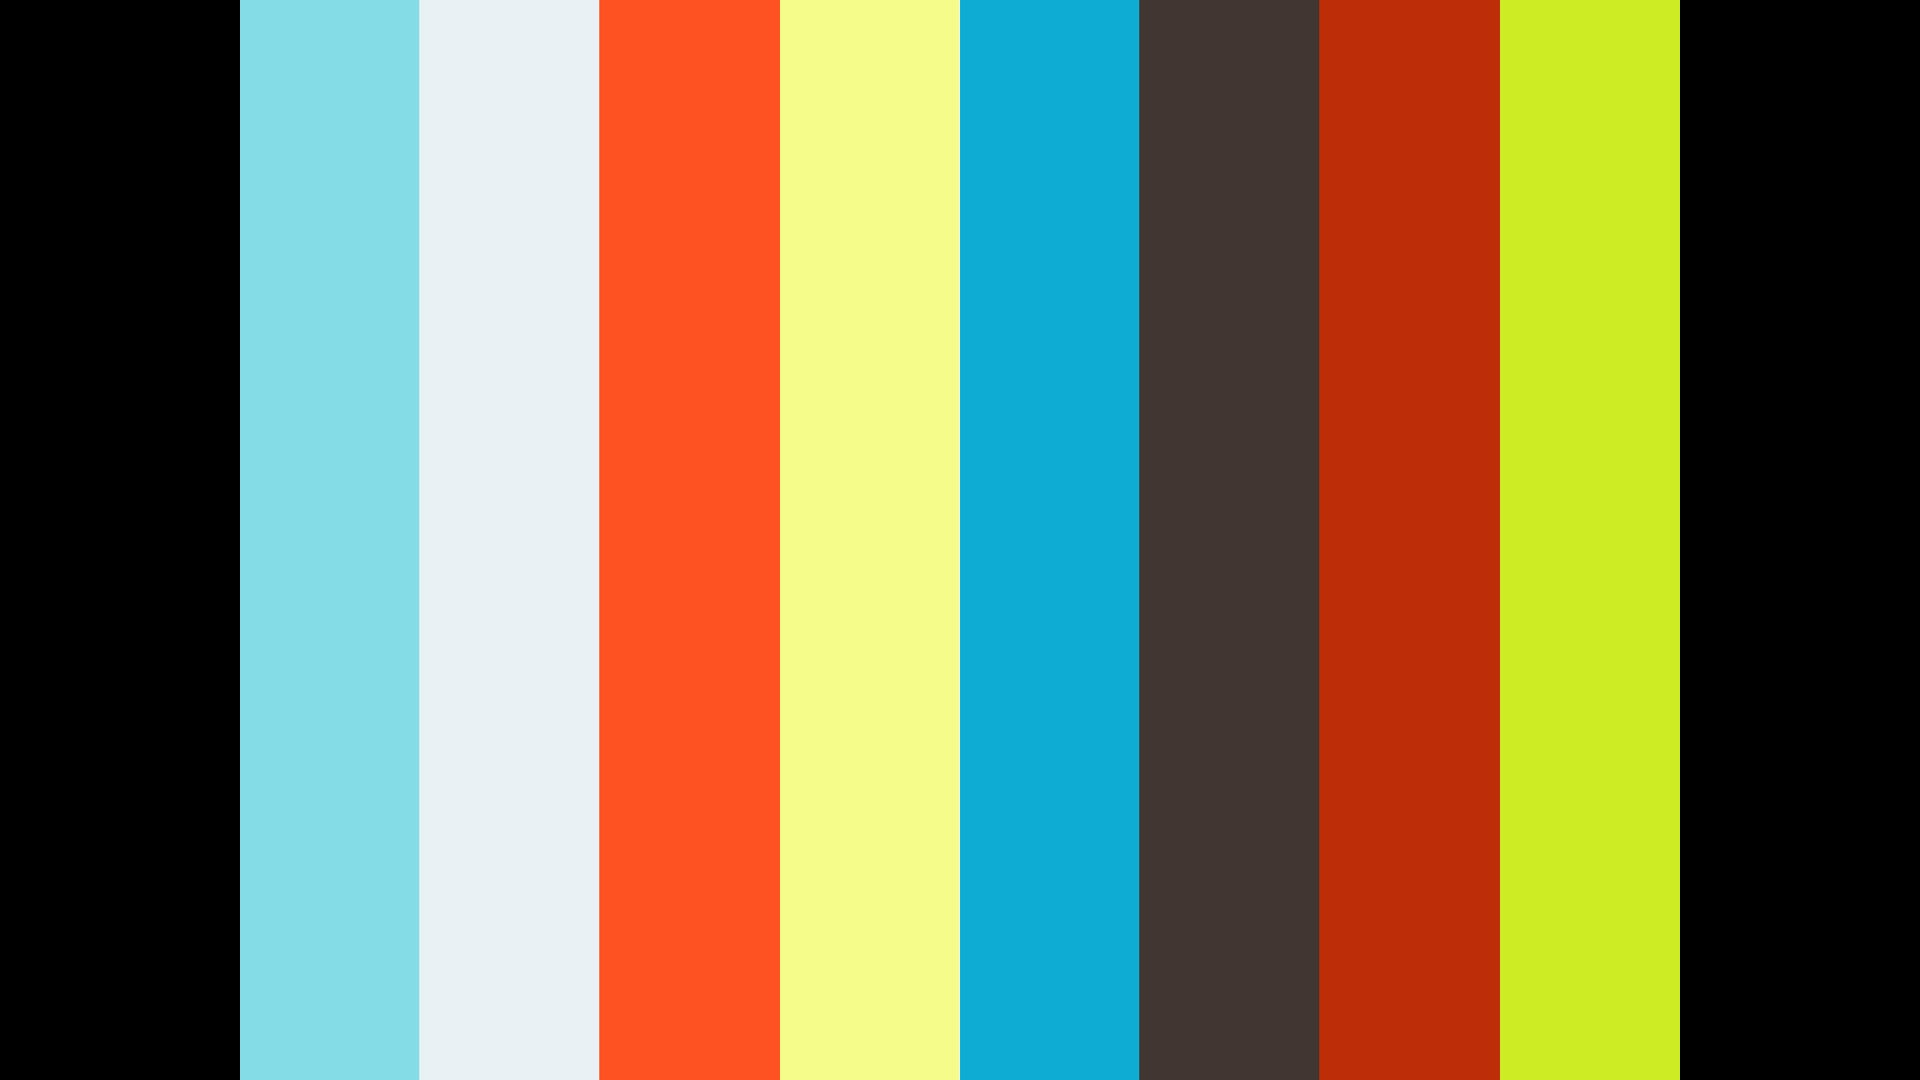 Water System Security Vulnerability Assessment for Small Water Systems